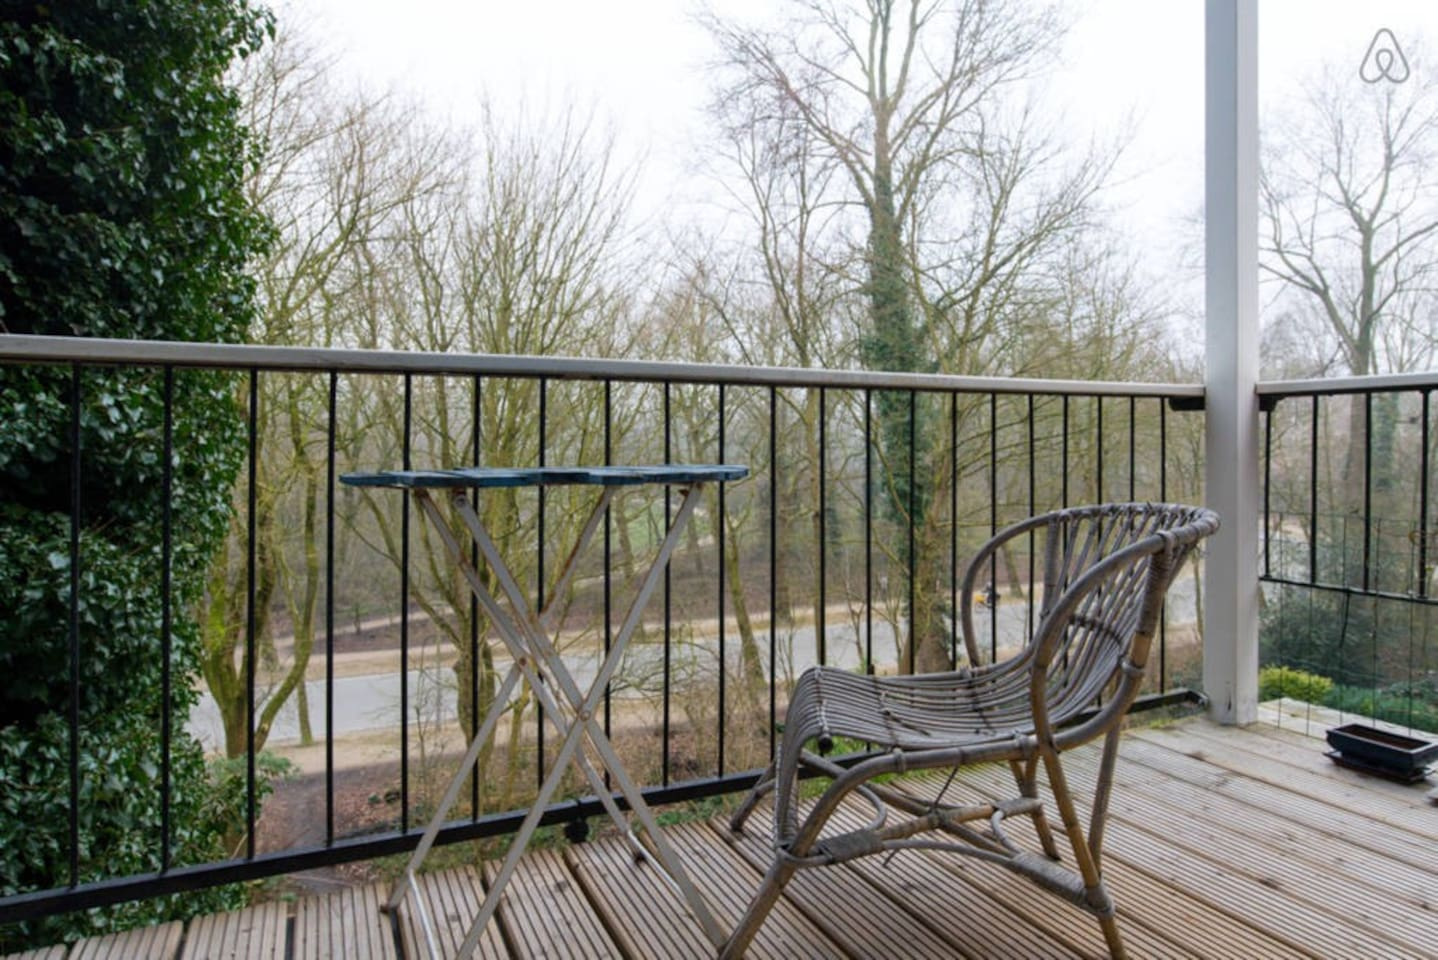 The lovely balcony. It is situated towards the south so there is sun all the time!